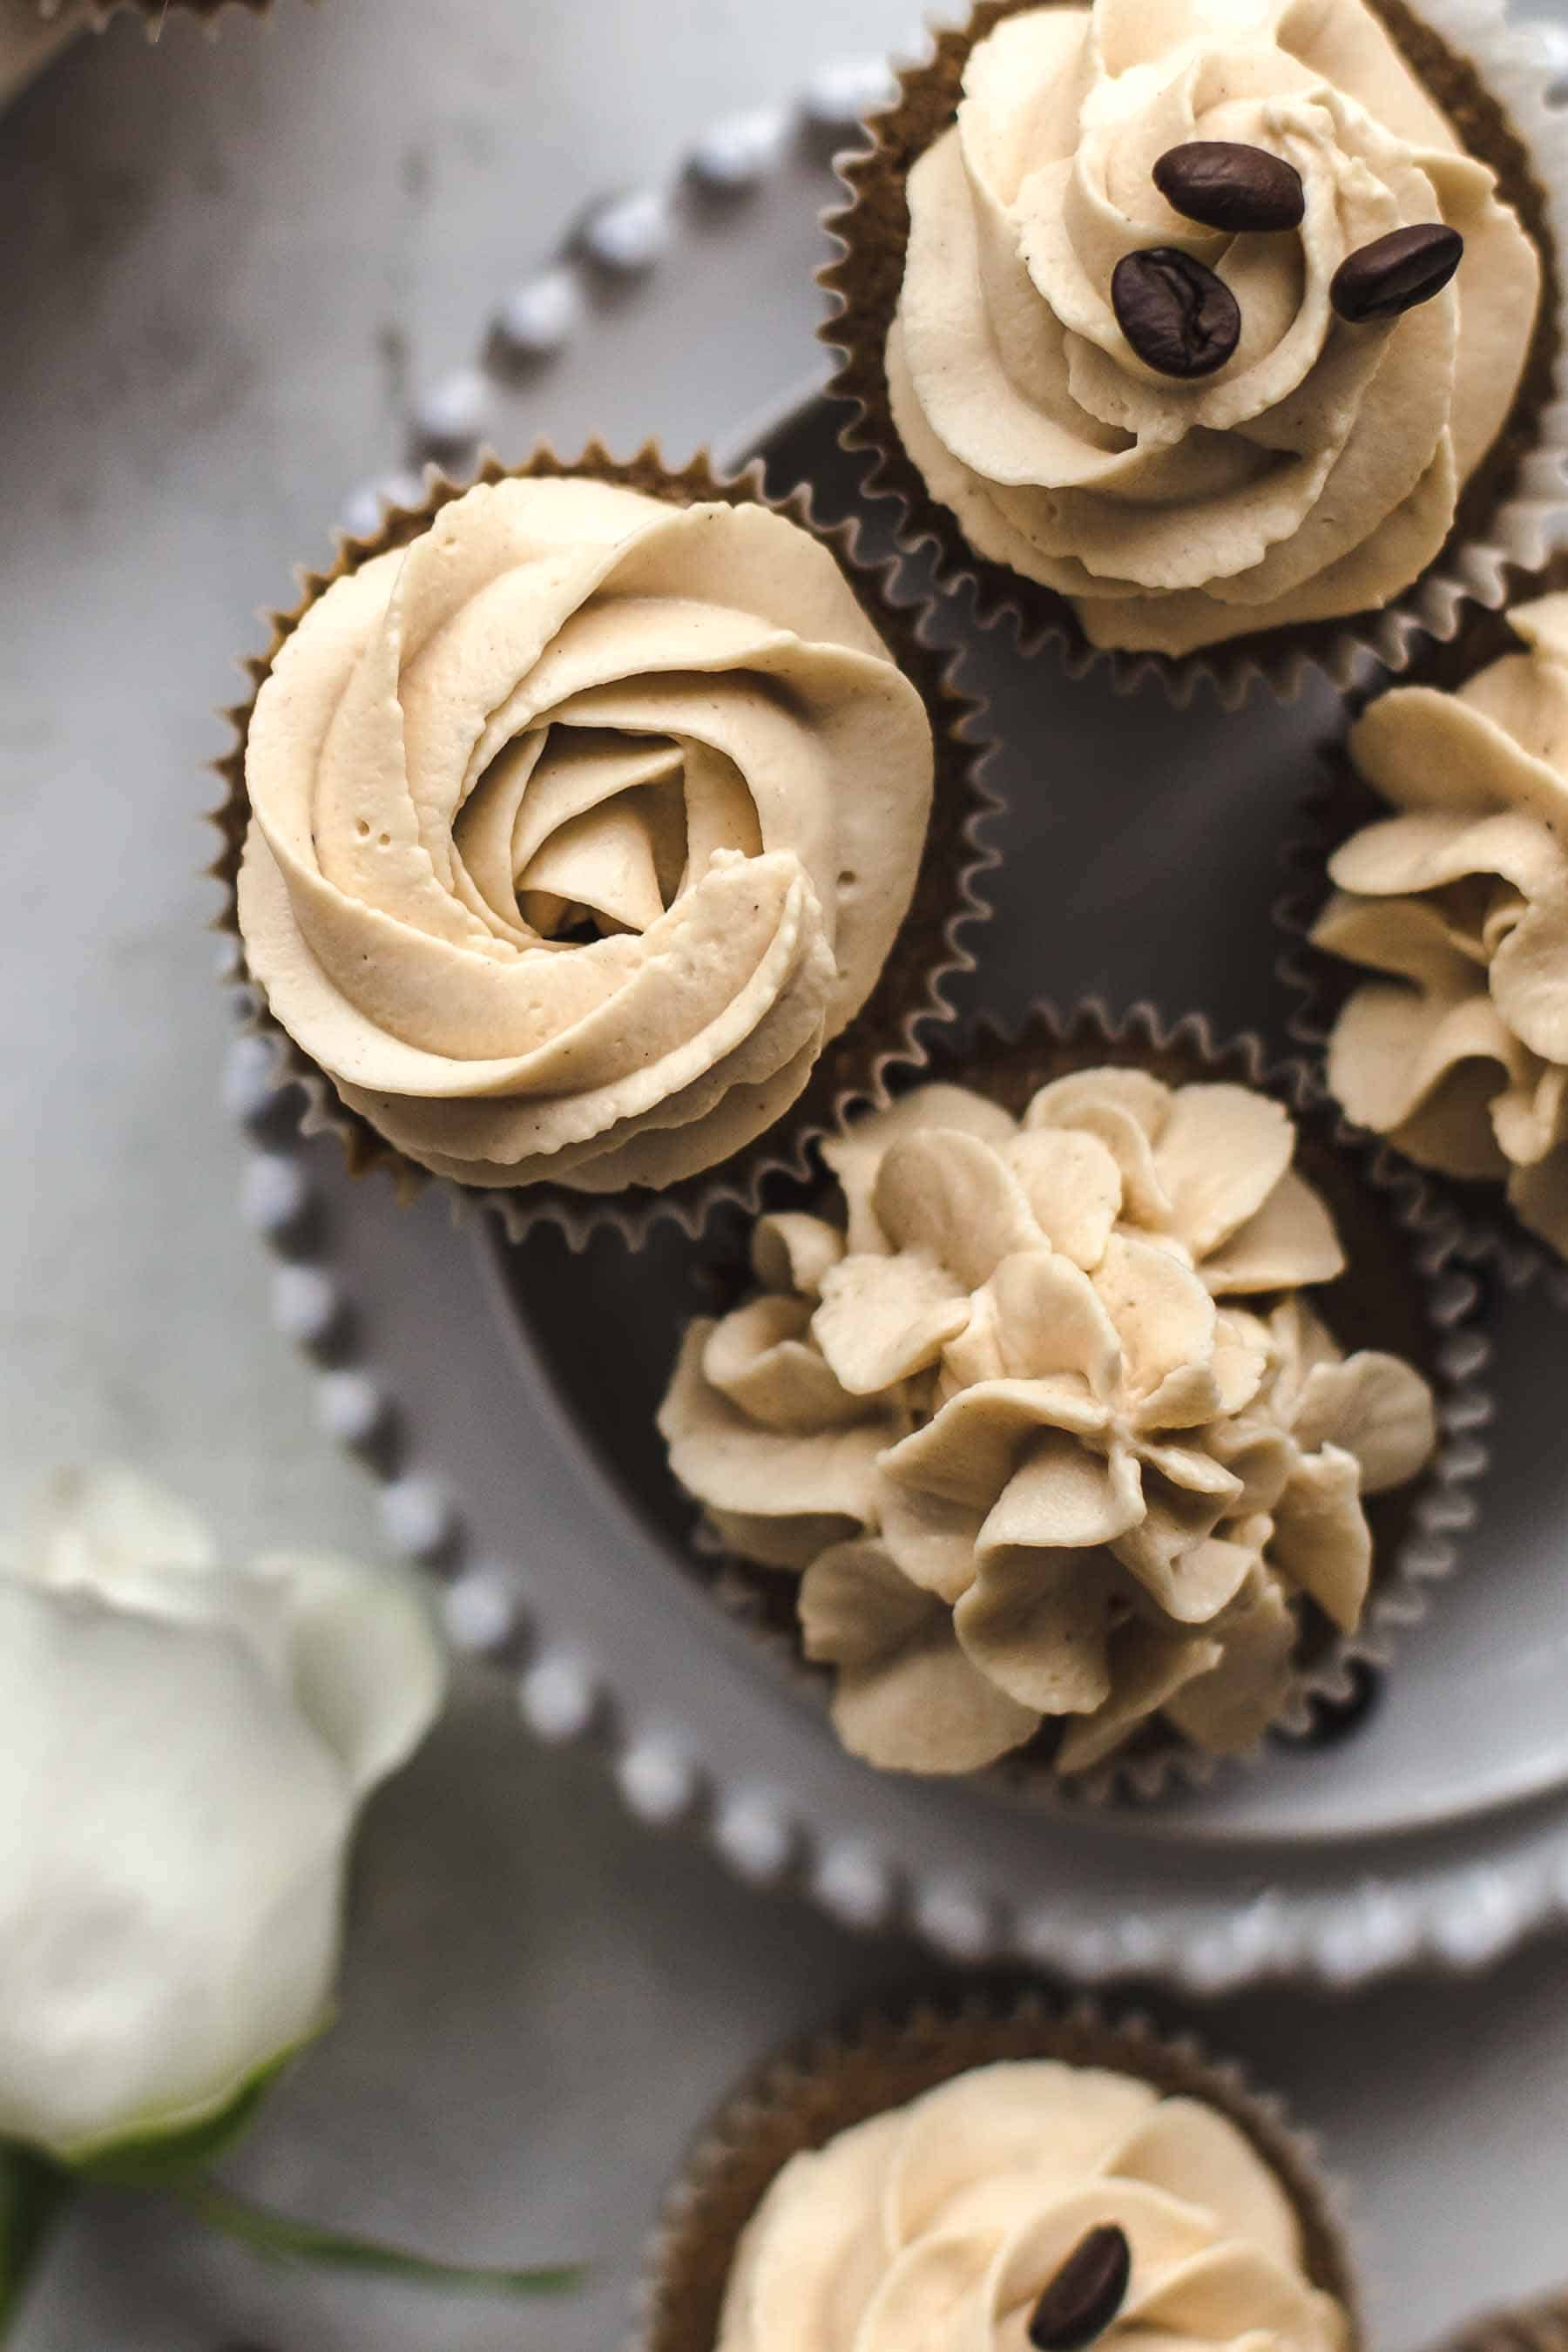 Coffee Cupcakes on a plate from the top